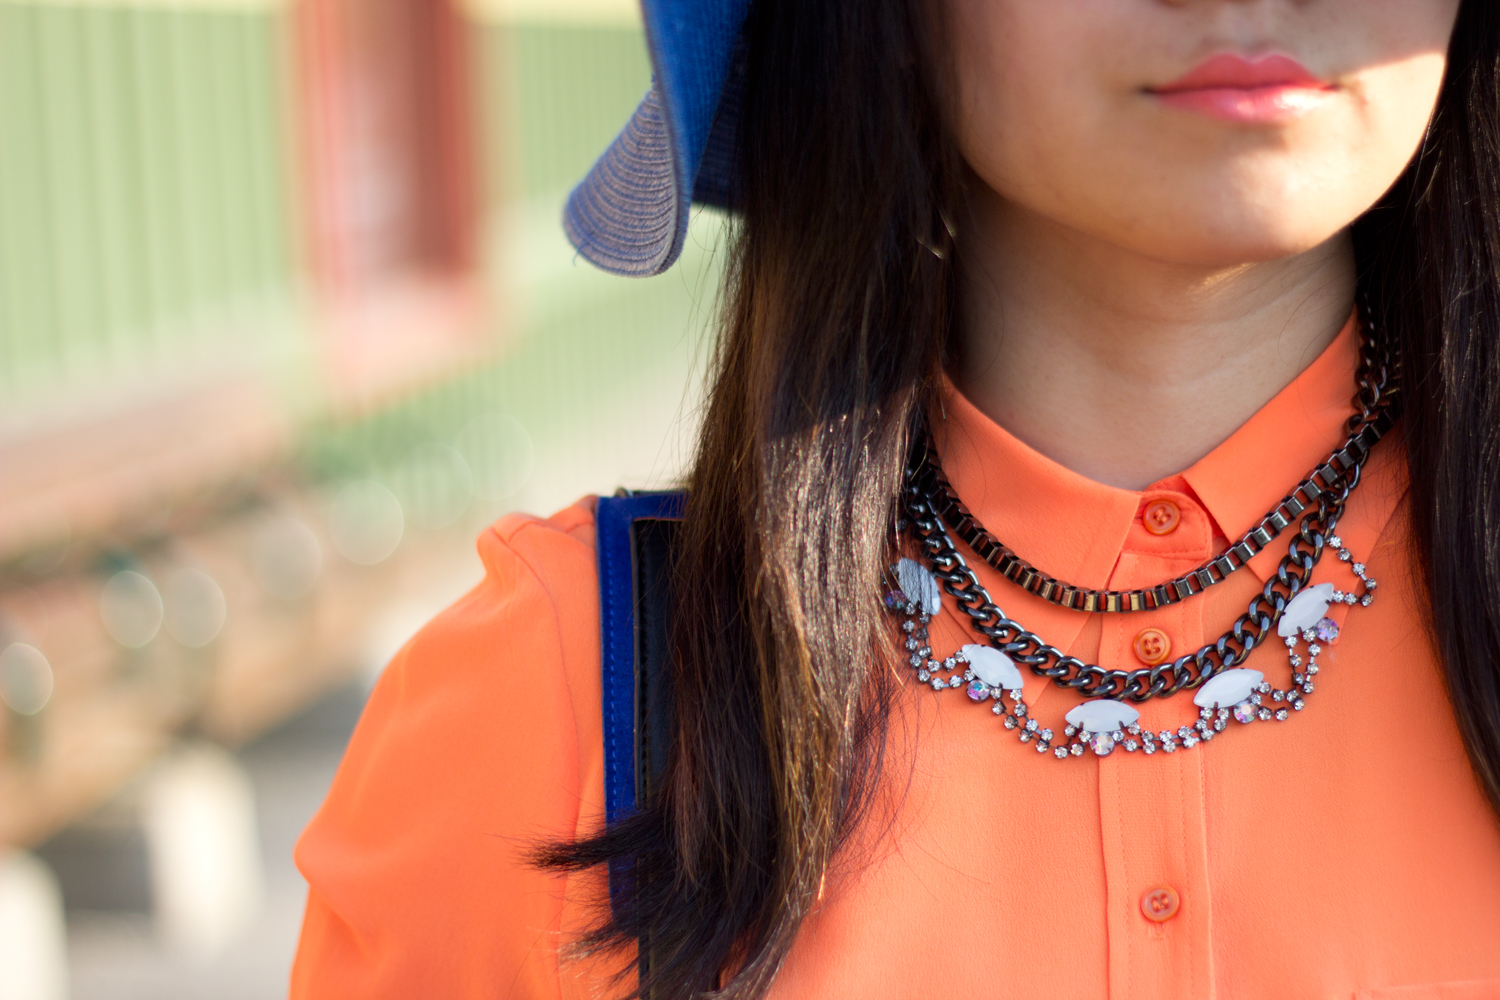 statement-necklace, joe-fresh-bright-orange-blouse, summer-look